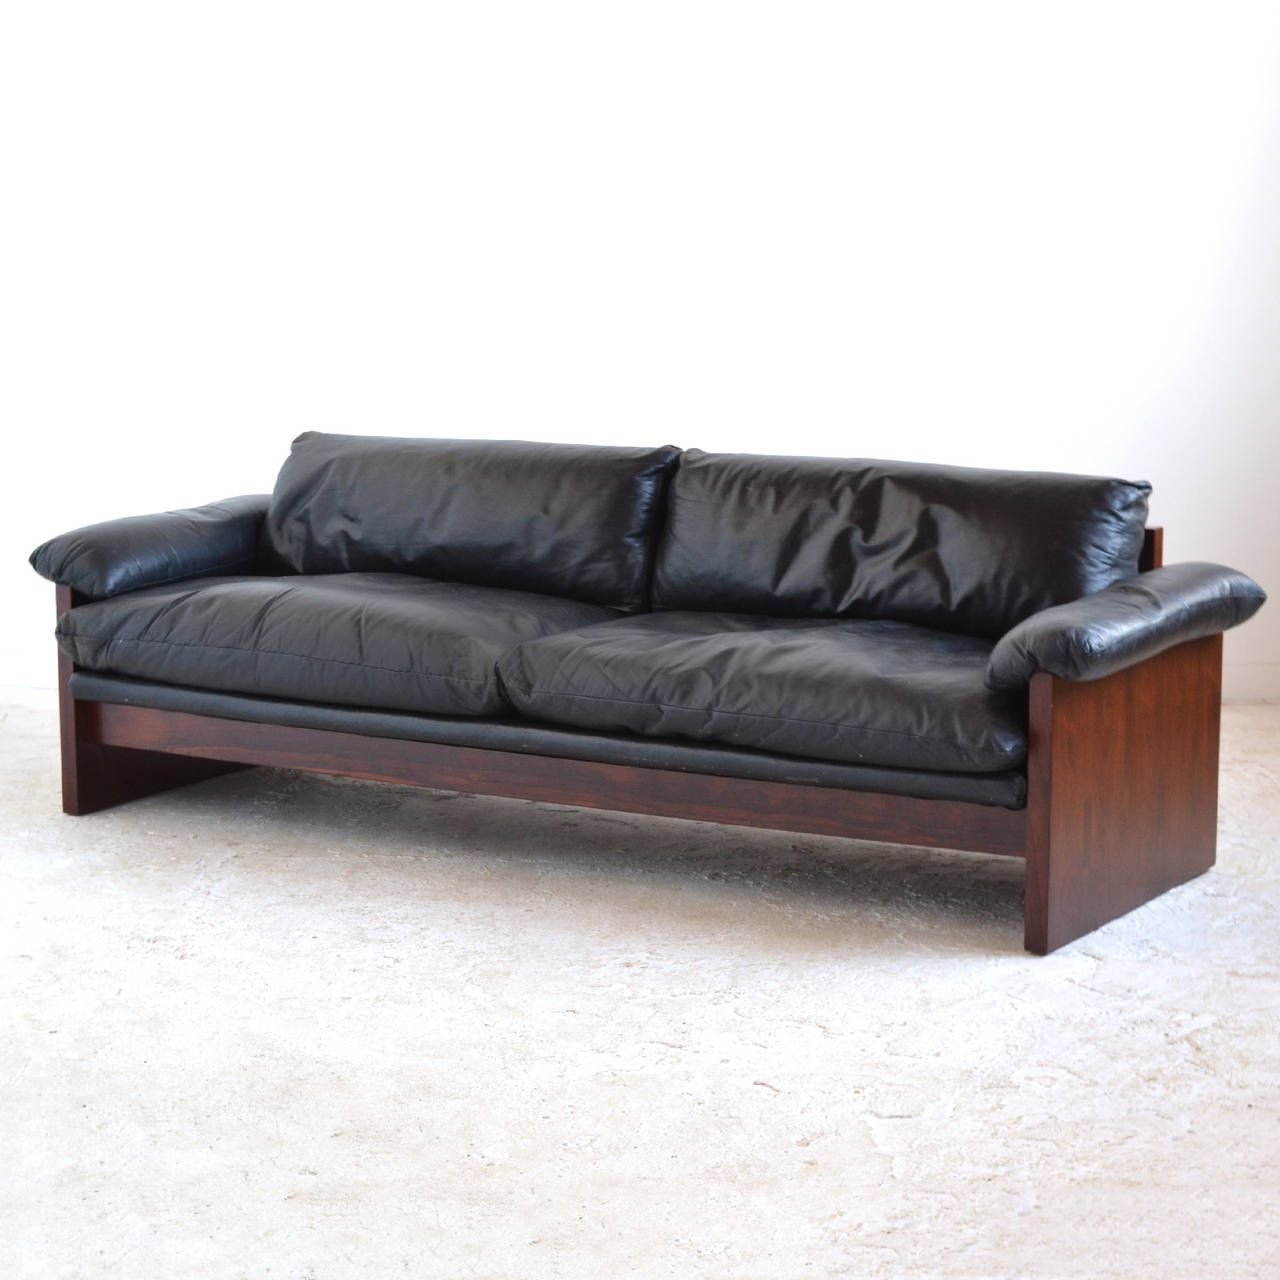 Rosewood Sofa With Down Filled Leather Cushions Image 6 Divan